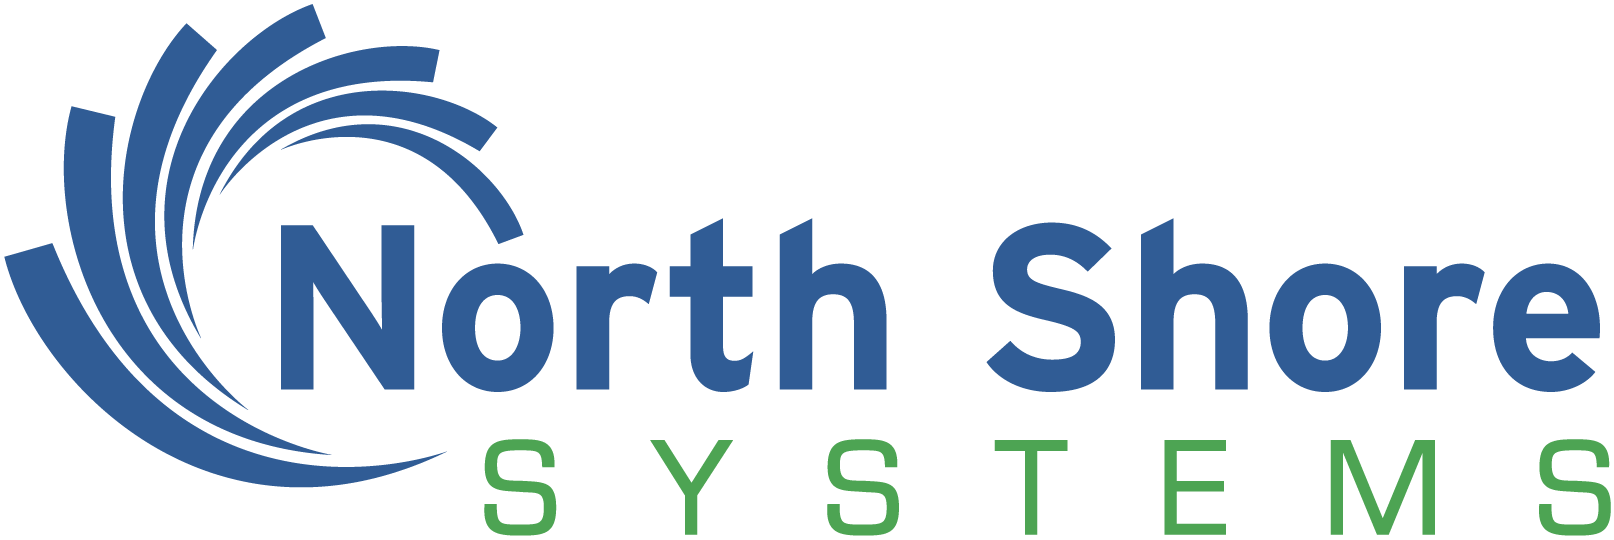 North Shore Systems spaced Logo@2x